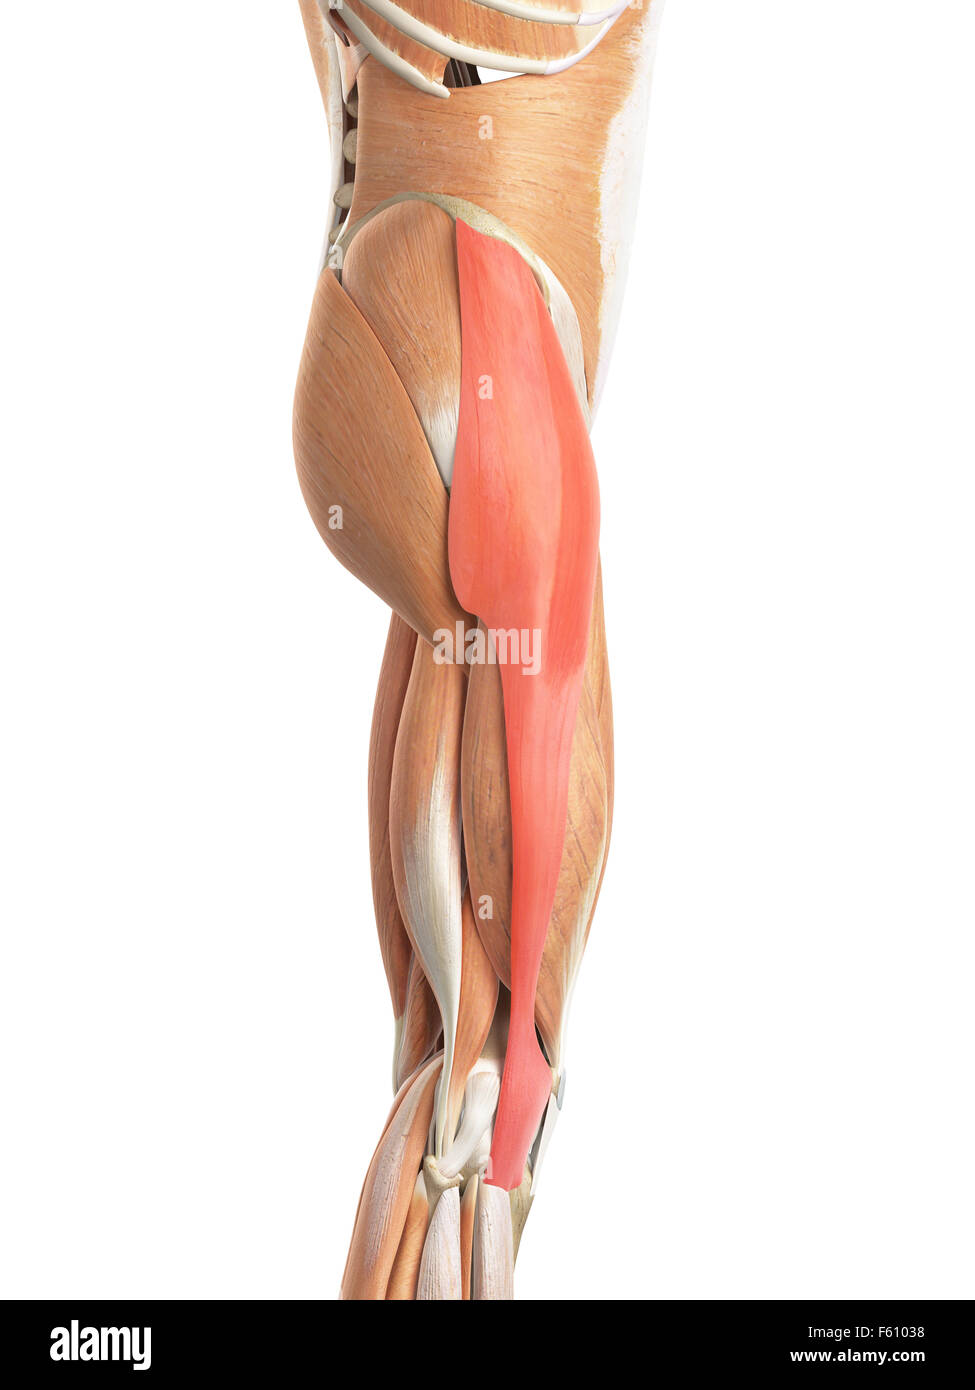 Illustration Fascia Lata Muscle Stock Photos & Illustration Fascia ...